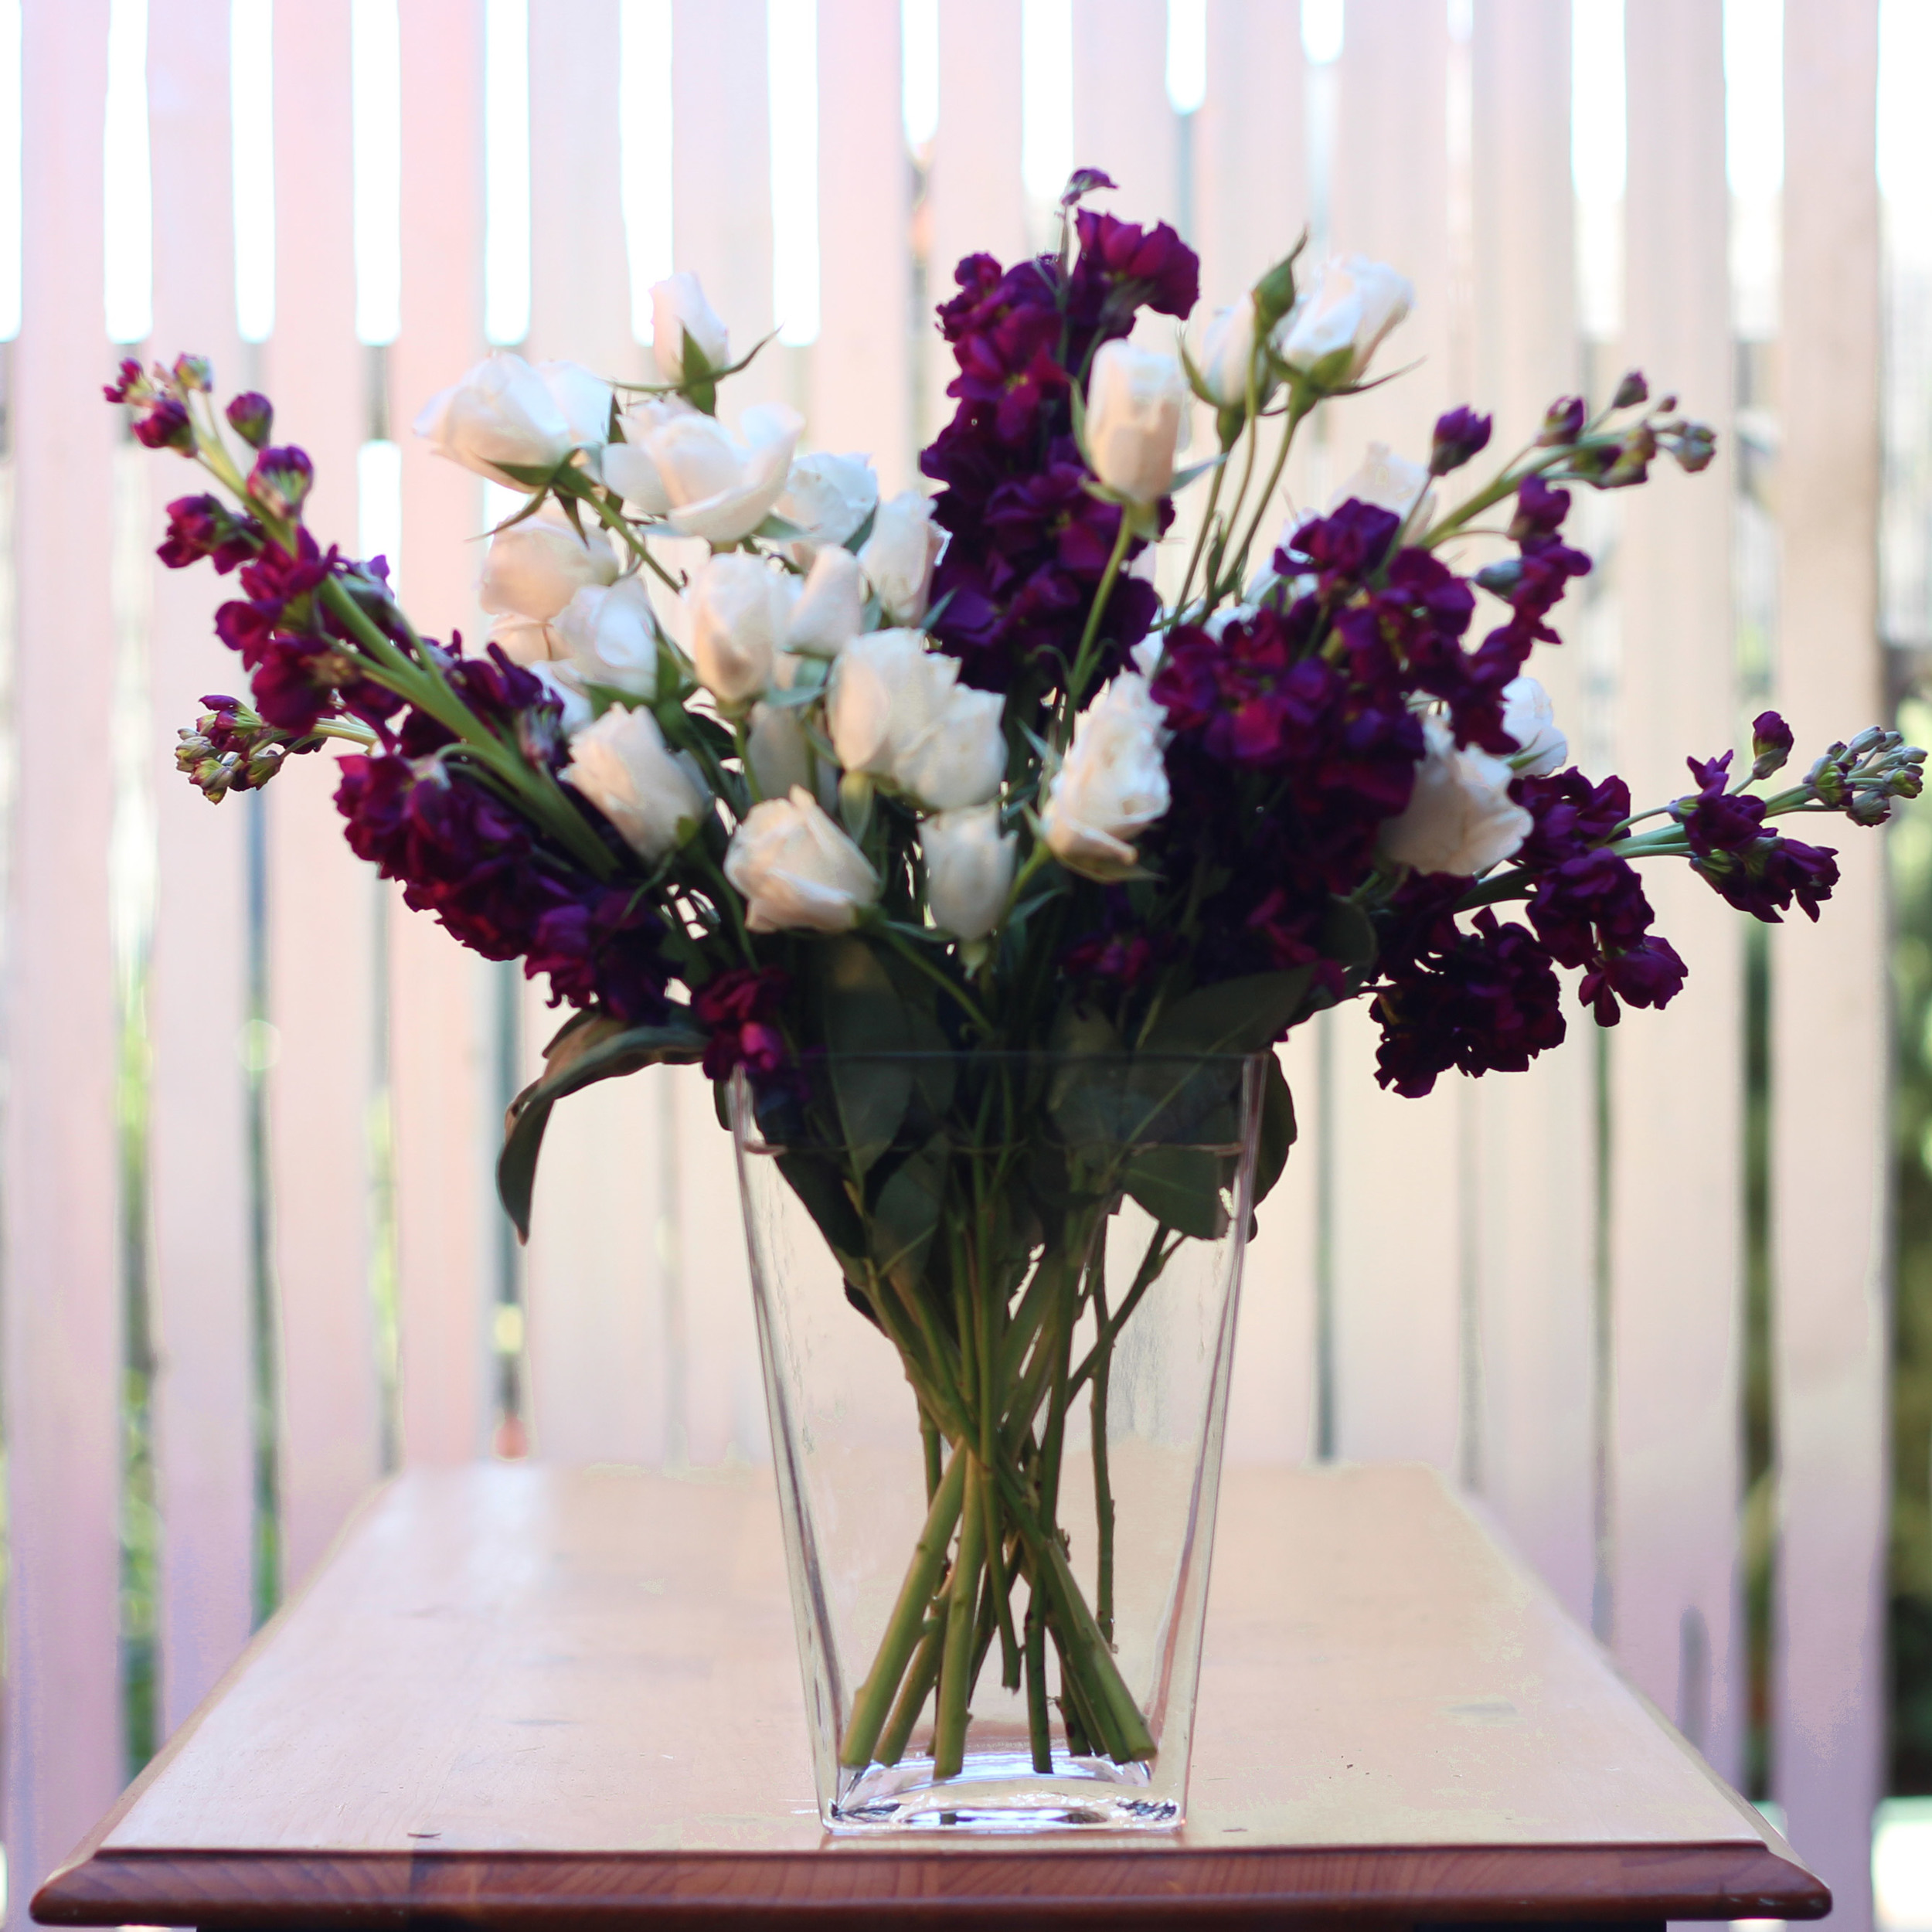 Fill in with Spray Roses, keeping stems in line with Stock stems.